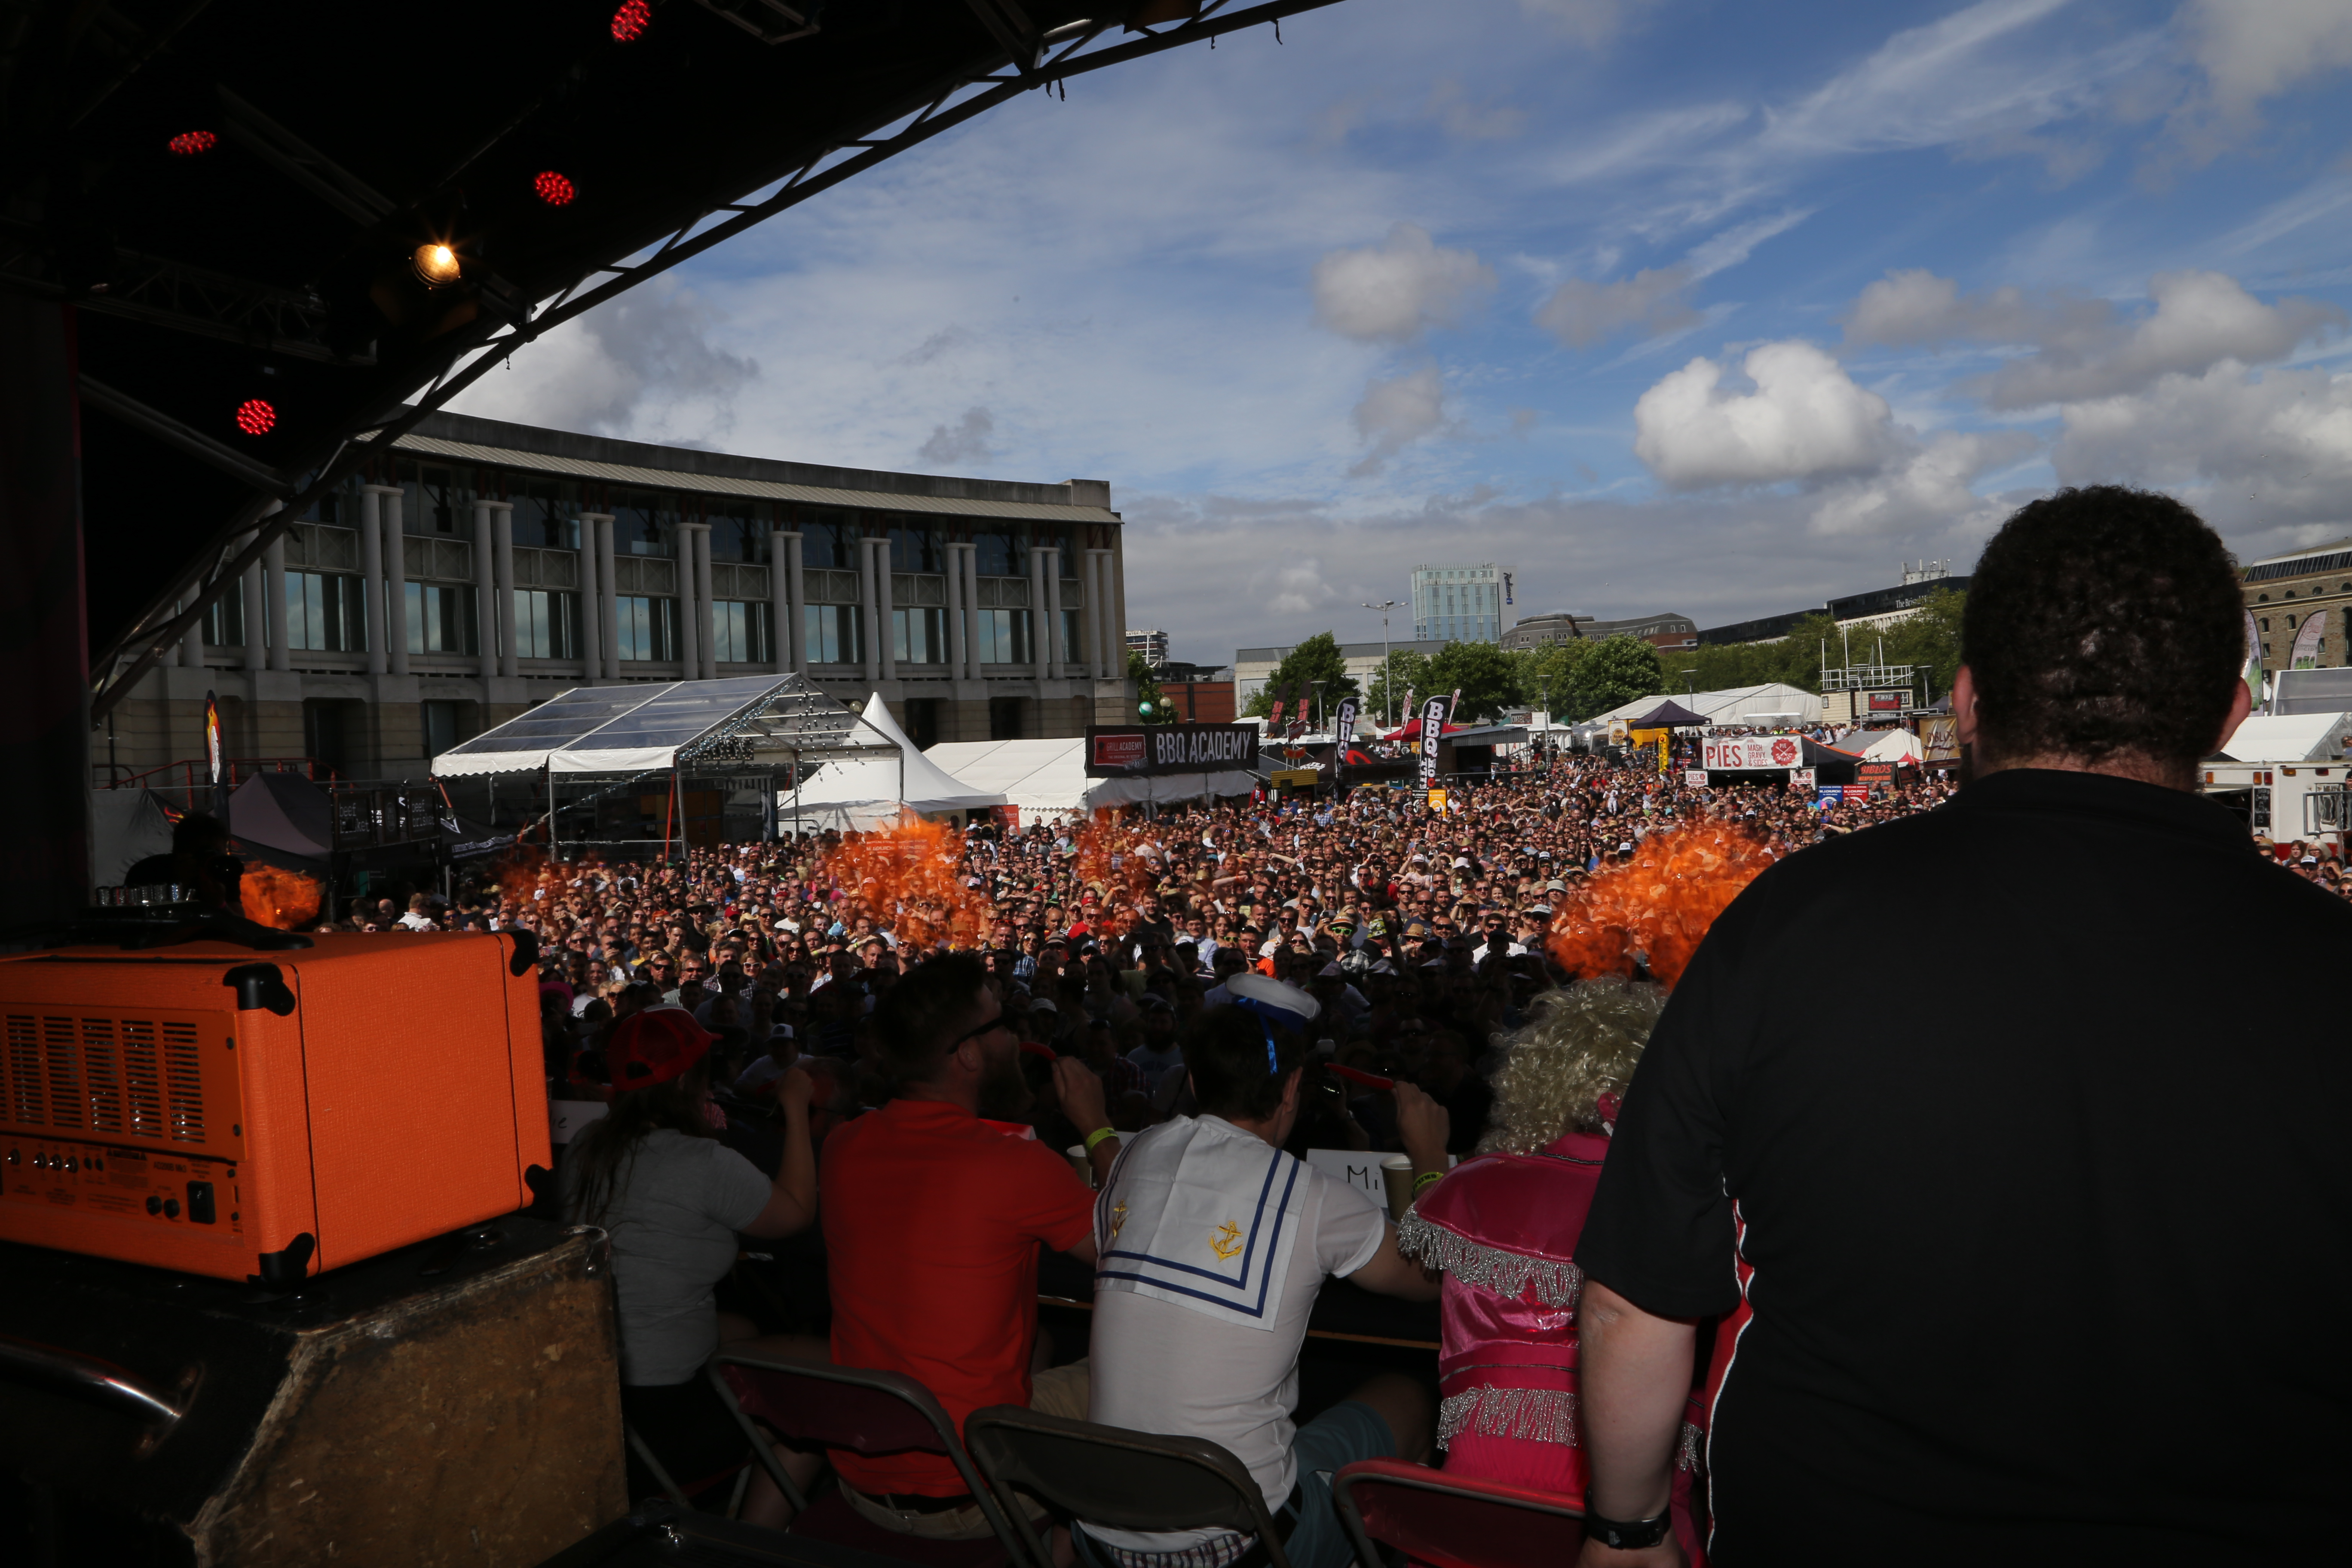 The chilli eating contest crowd